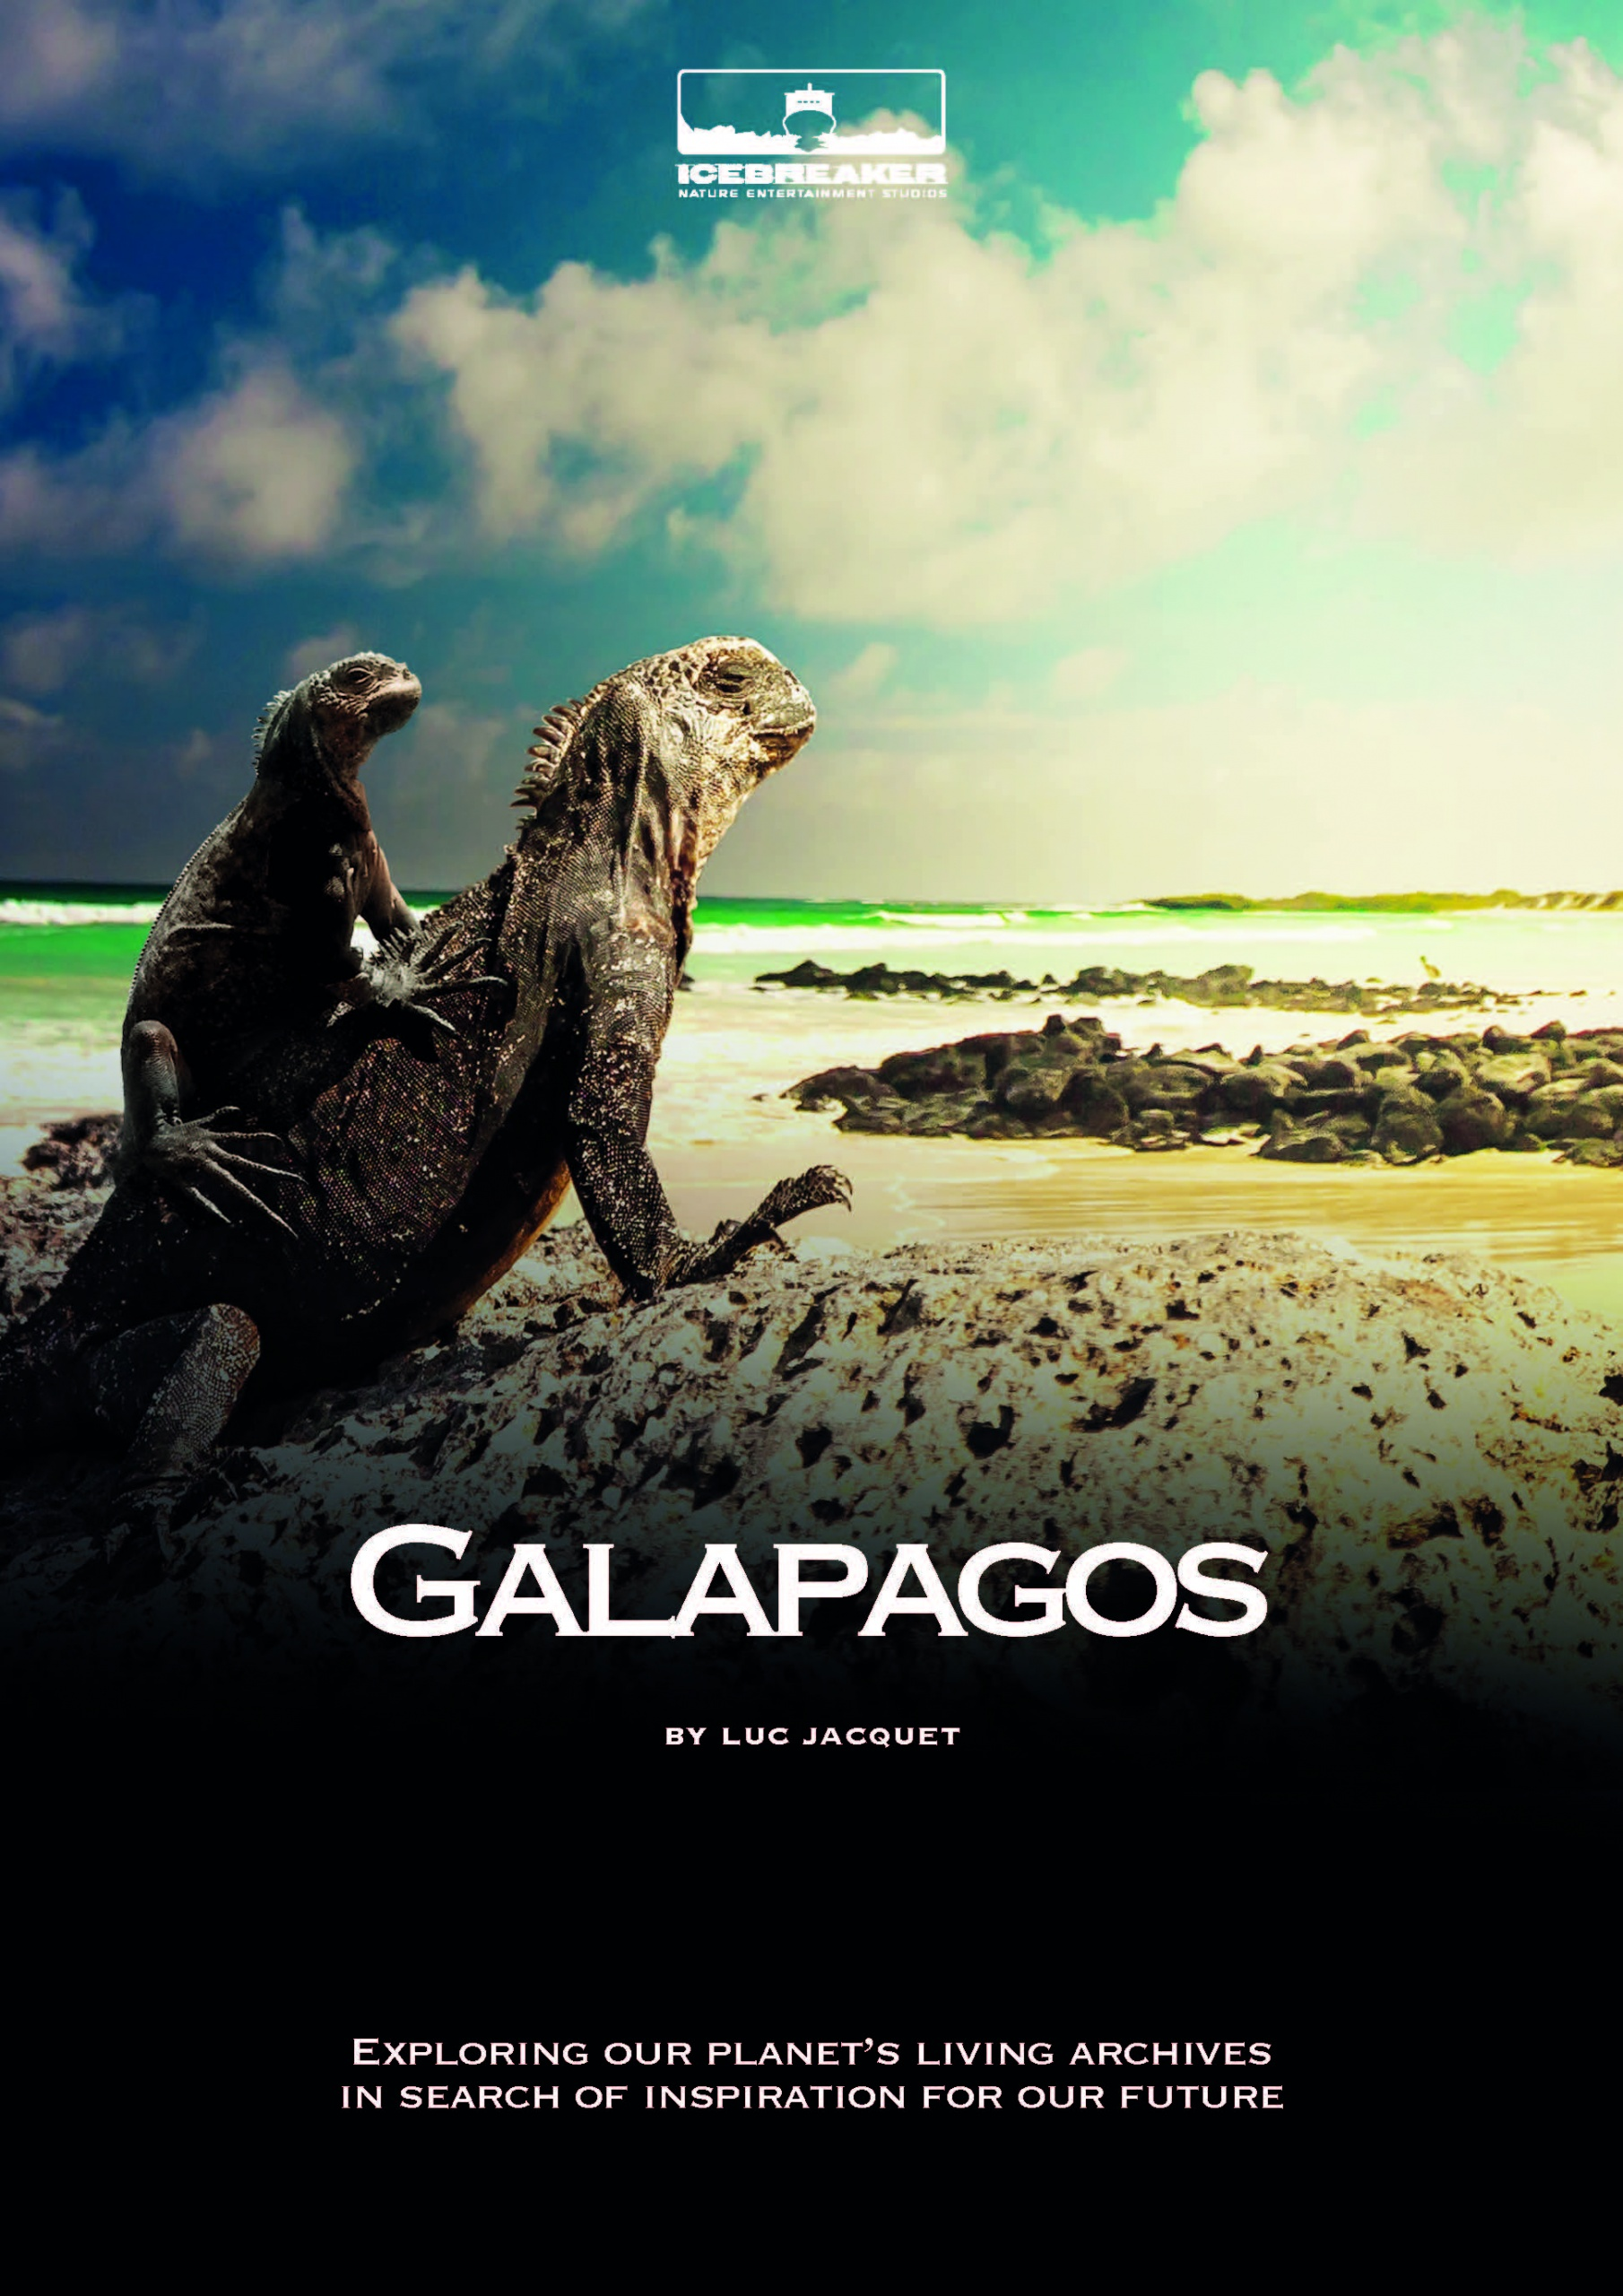 Galapagos by Luc Jacquet